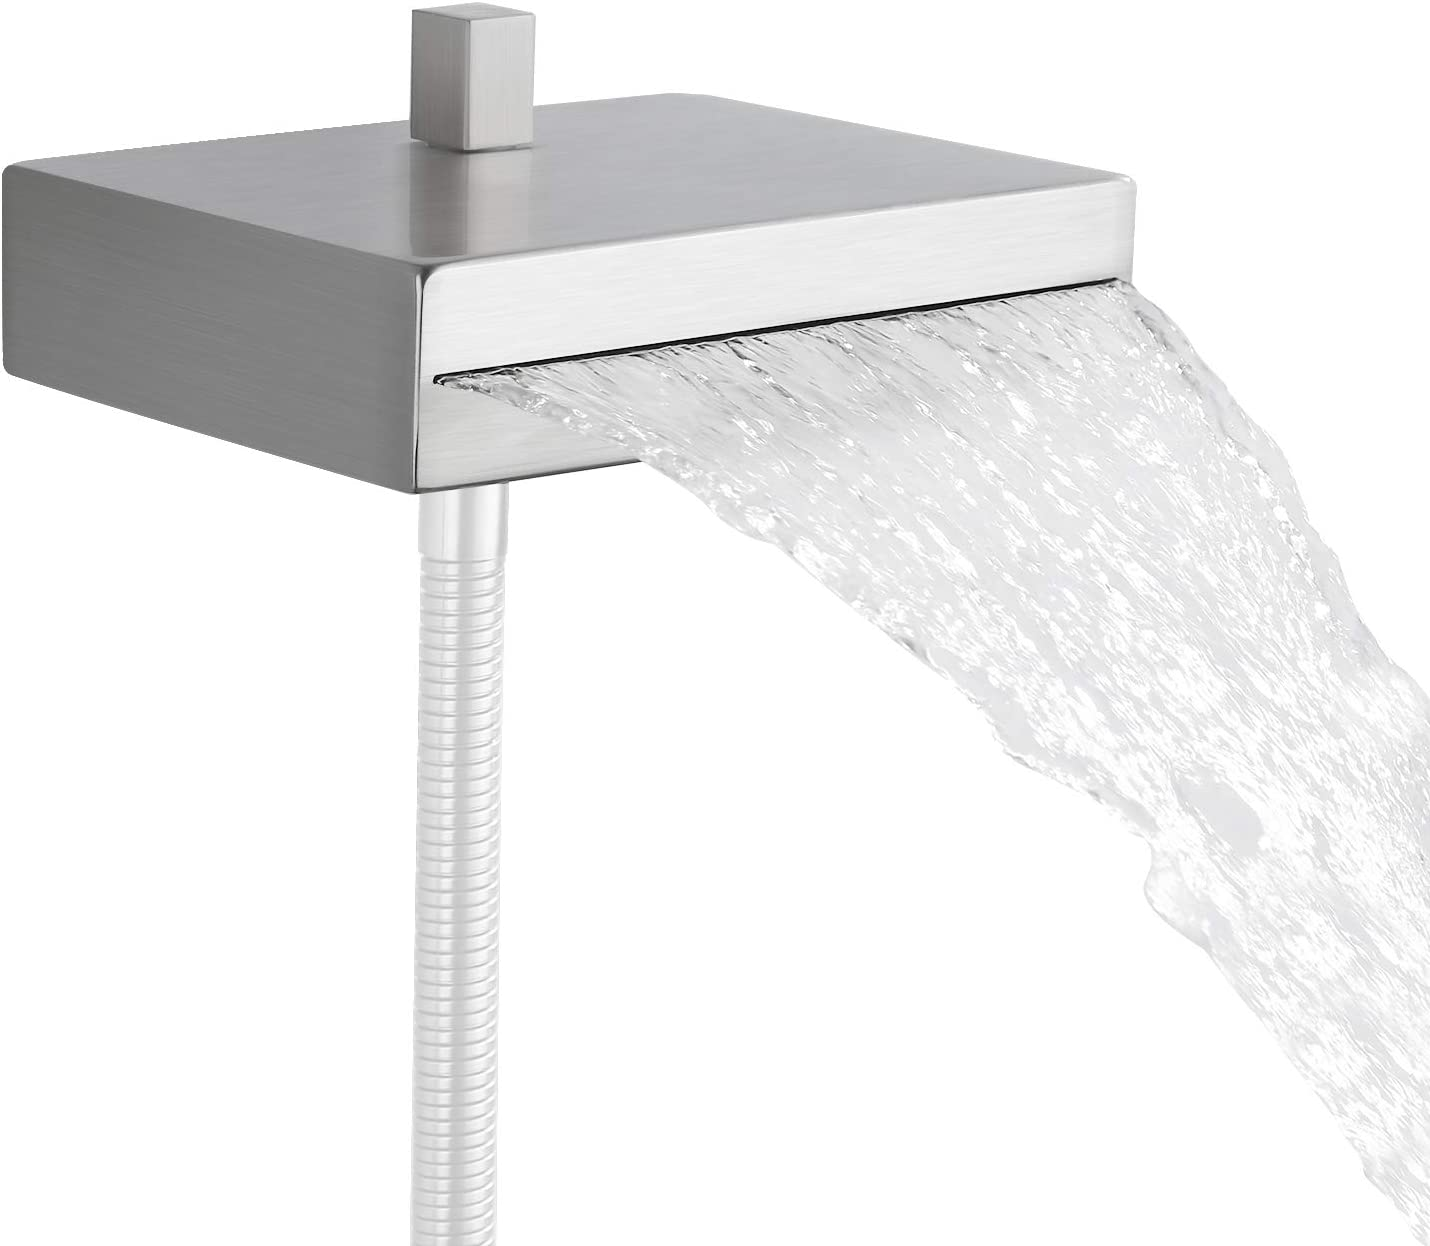 KES Bathtub Faucet with Shower Diverter Waterfall Tub Faucet Wall Mounted Bathtub Spout Stainless Steel Brushed Finish, PSN9B-BN